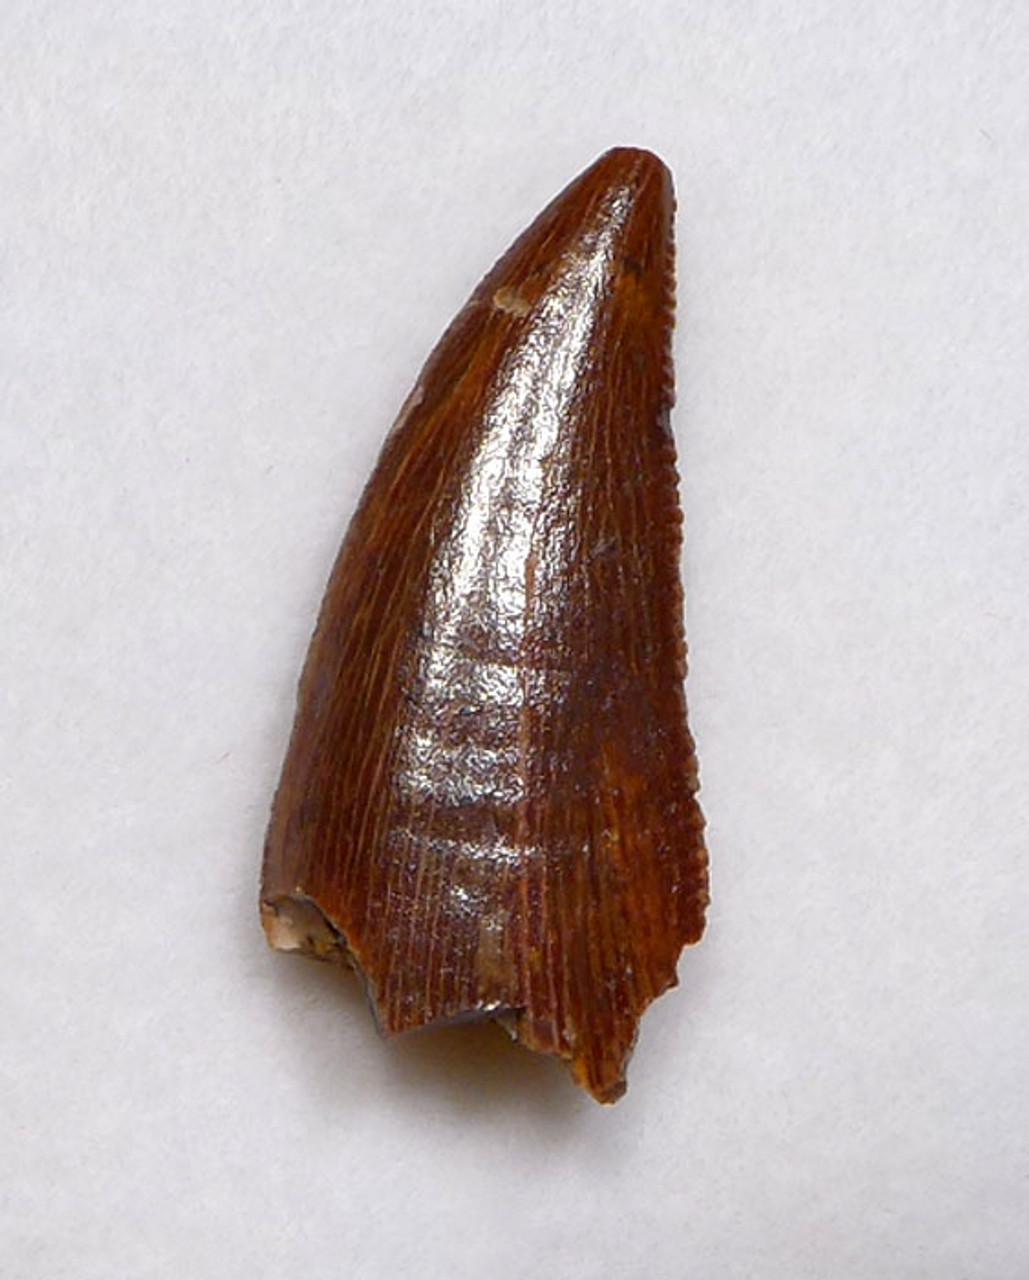 RAPTOR TOOTH FROM A LARGE DROMAEOSAUR DINOSAUR  *DT6-317